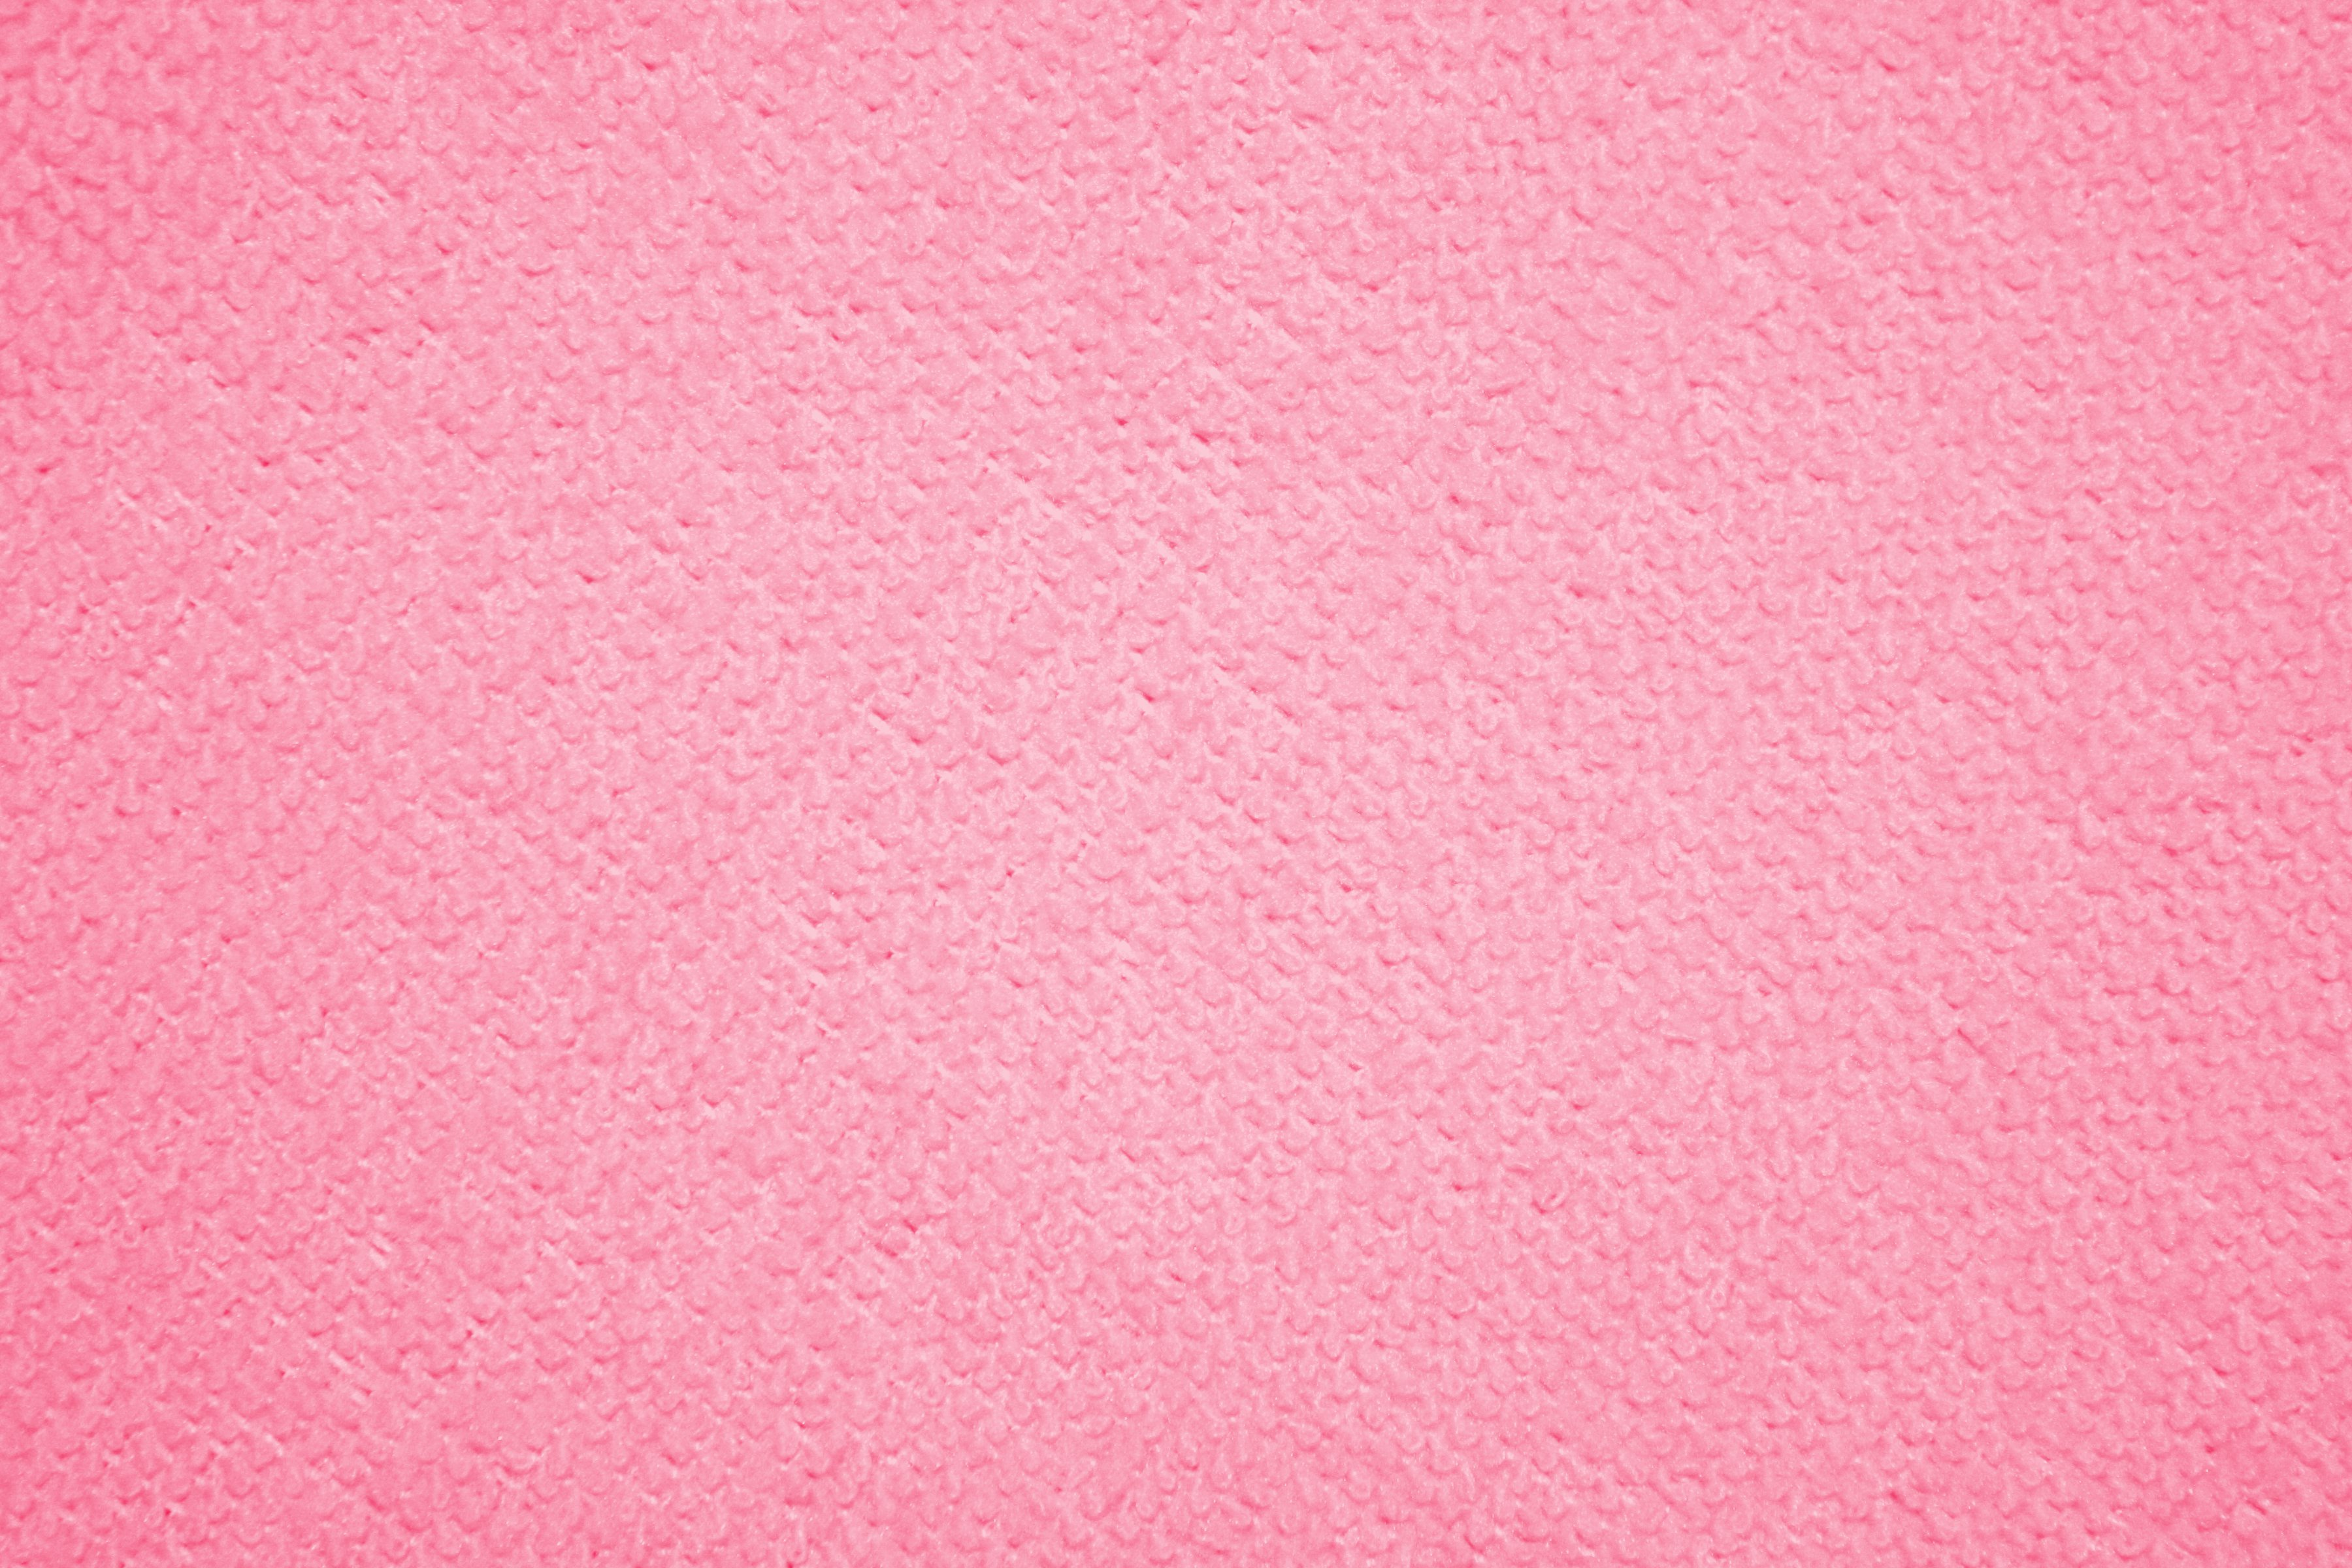 Salmon Pink or Coral Colored Microfiber Cloth Fabric Texture ...